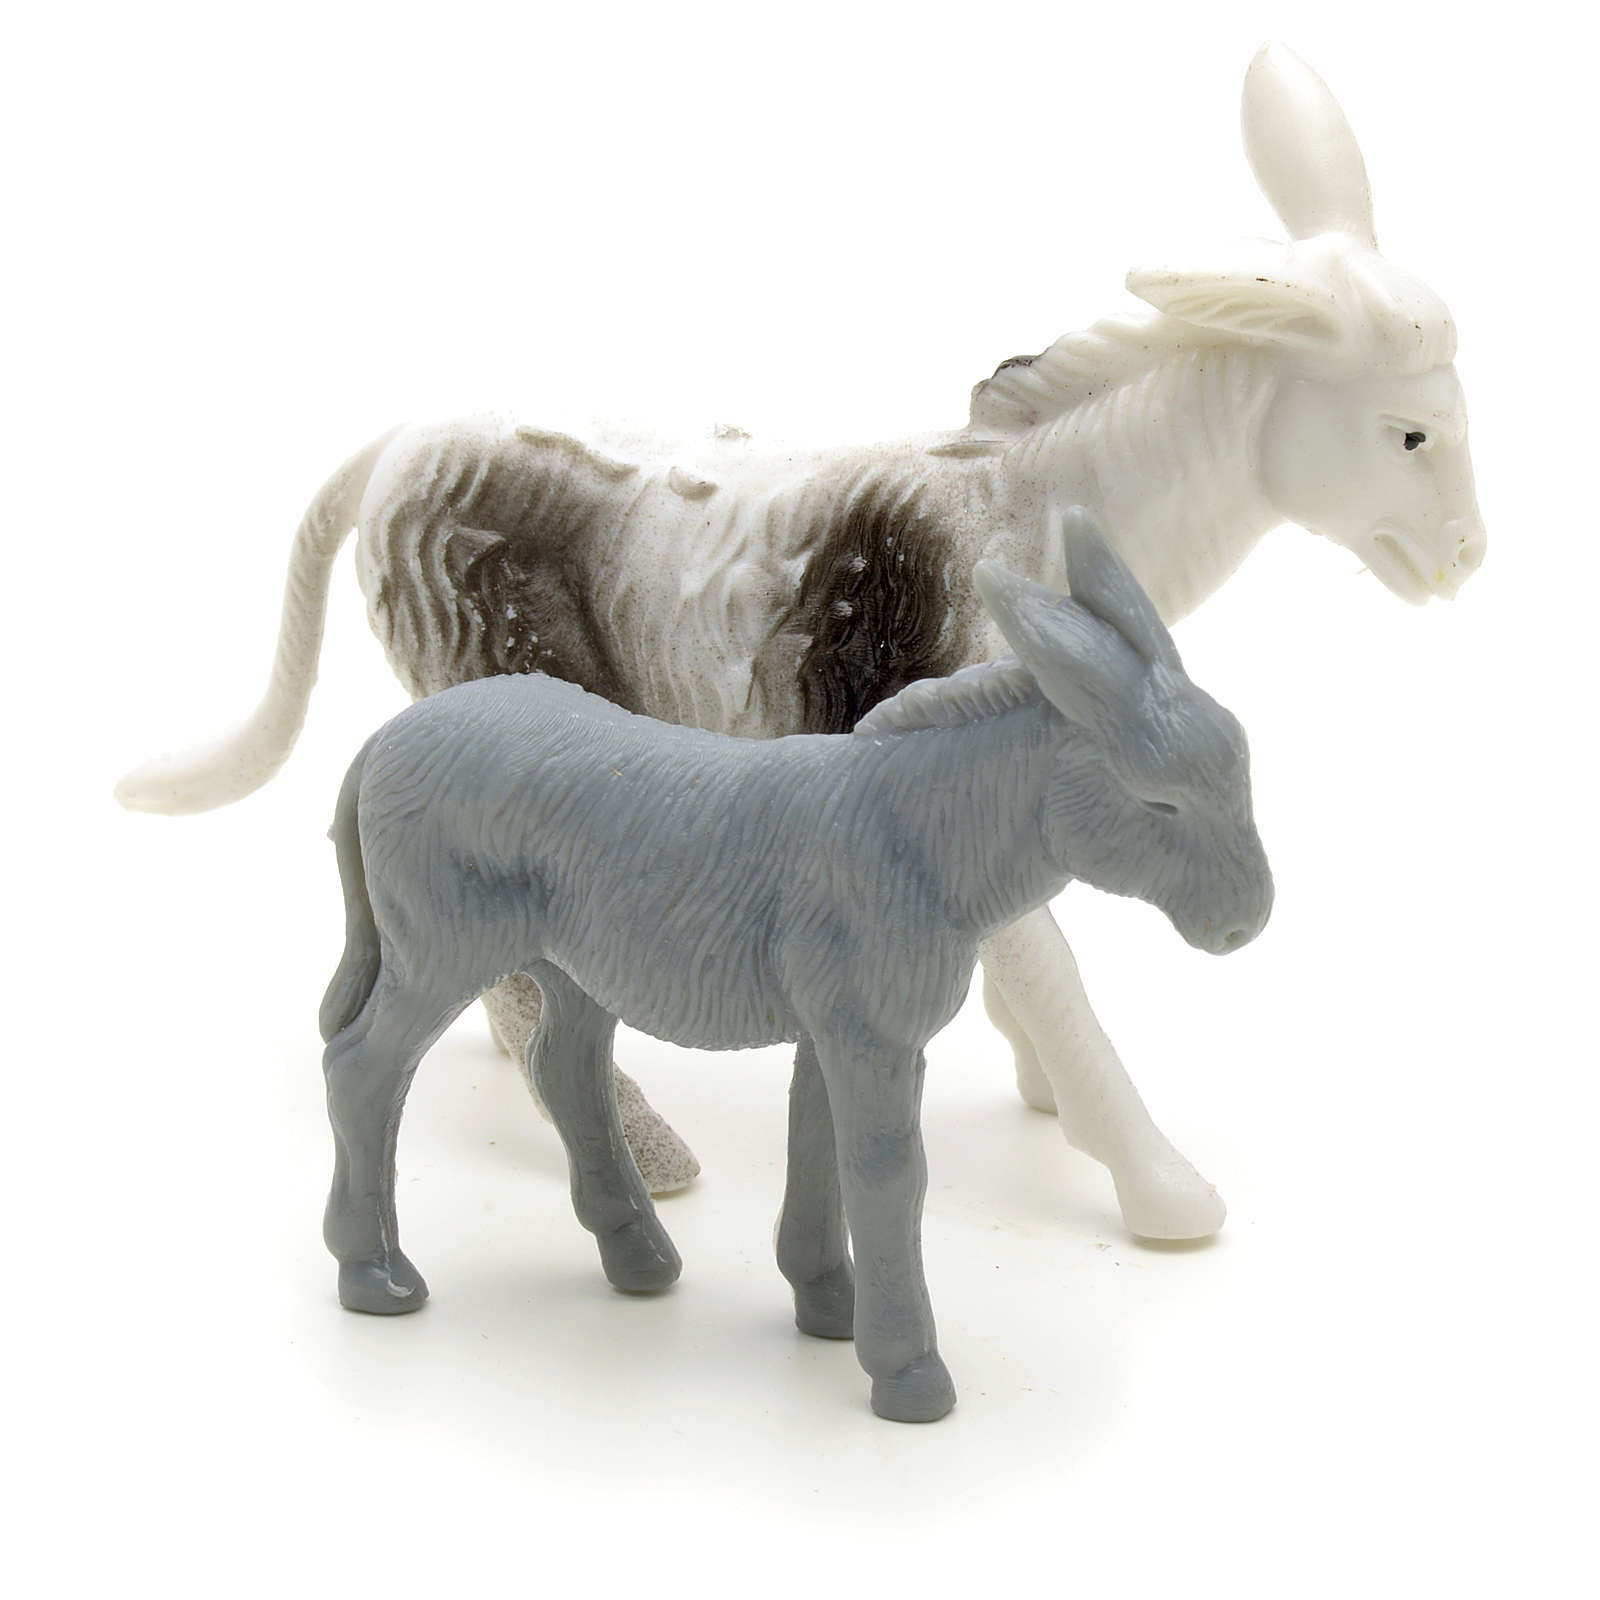 Nativity figurine, donkeys for shepherd measuring 6cm 3